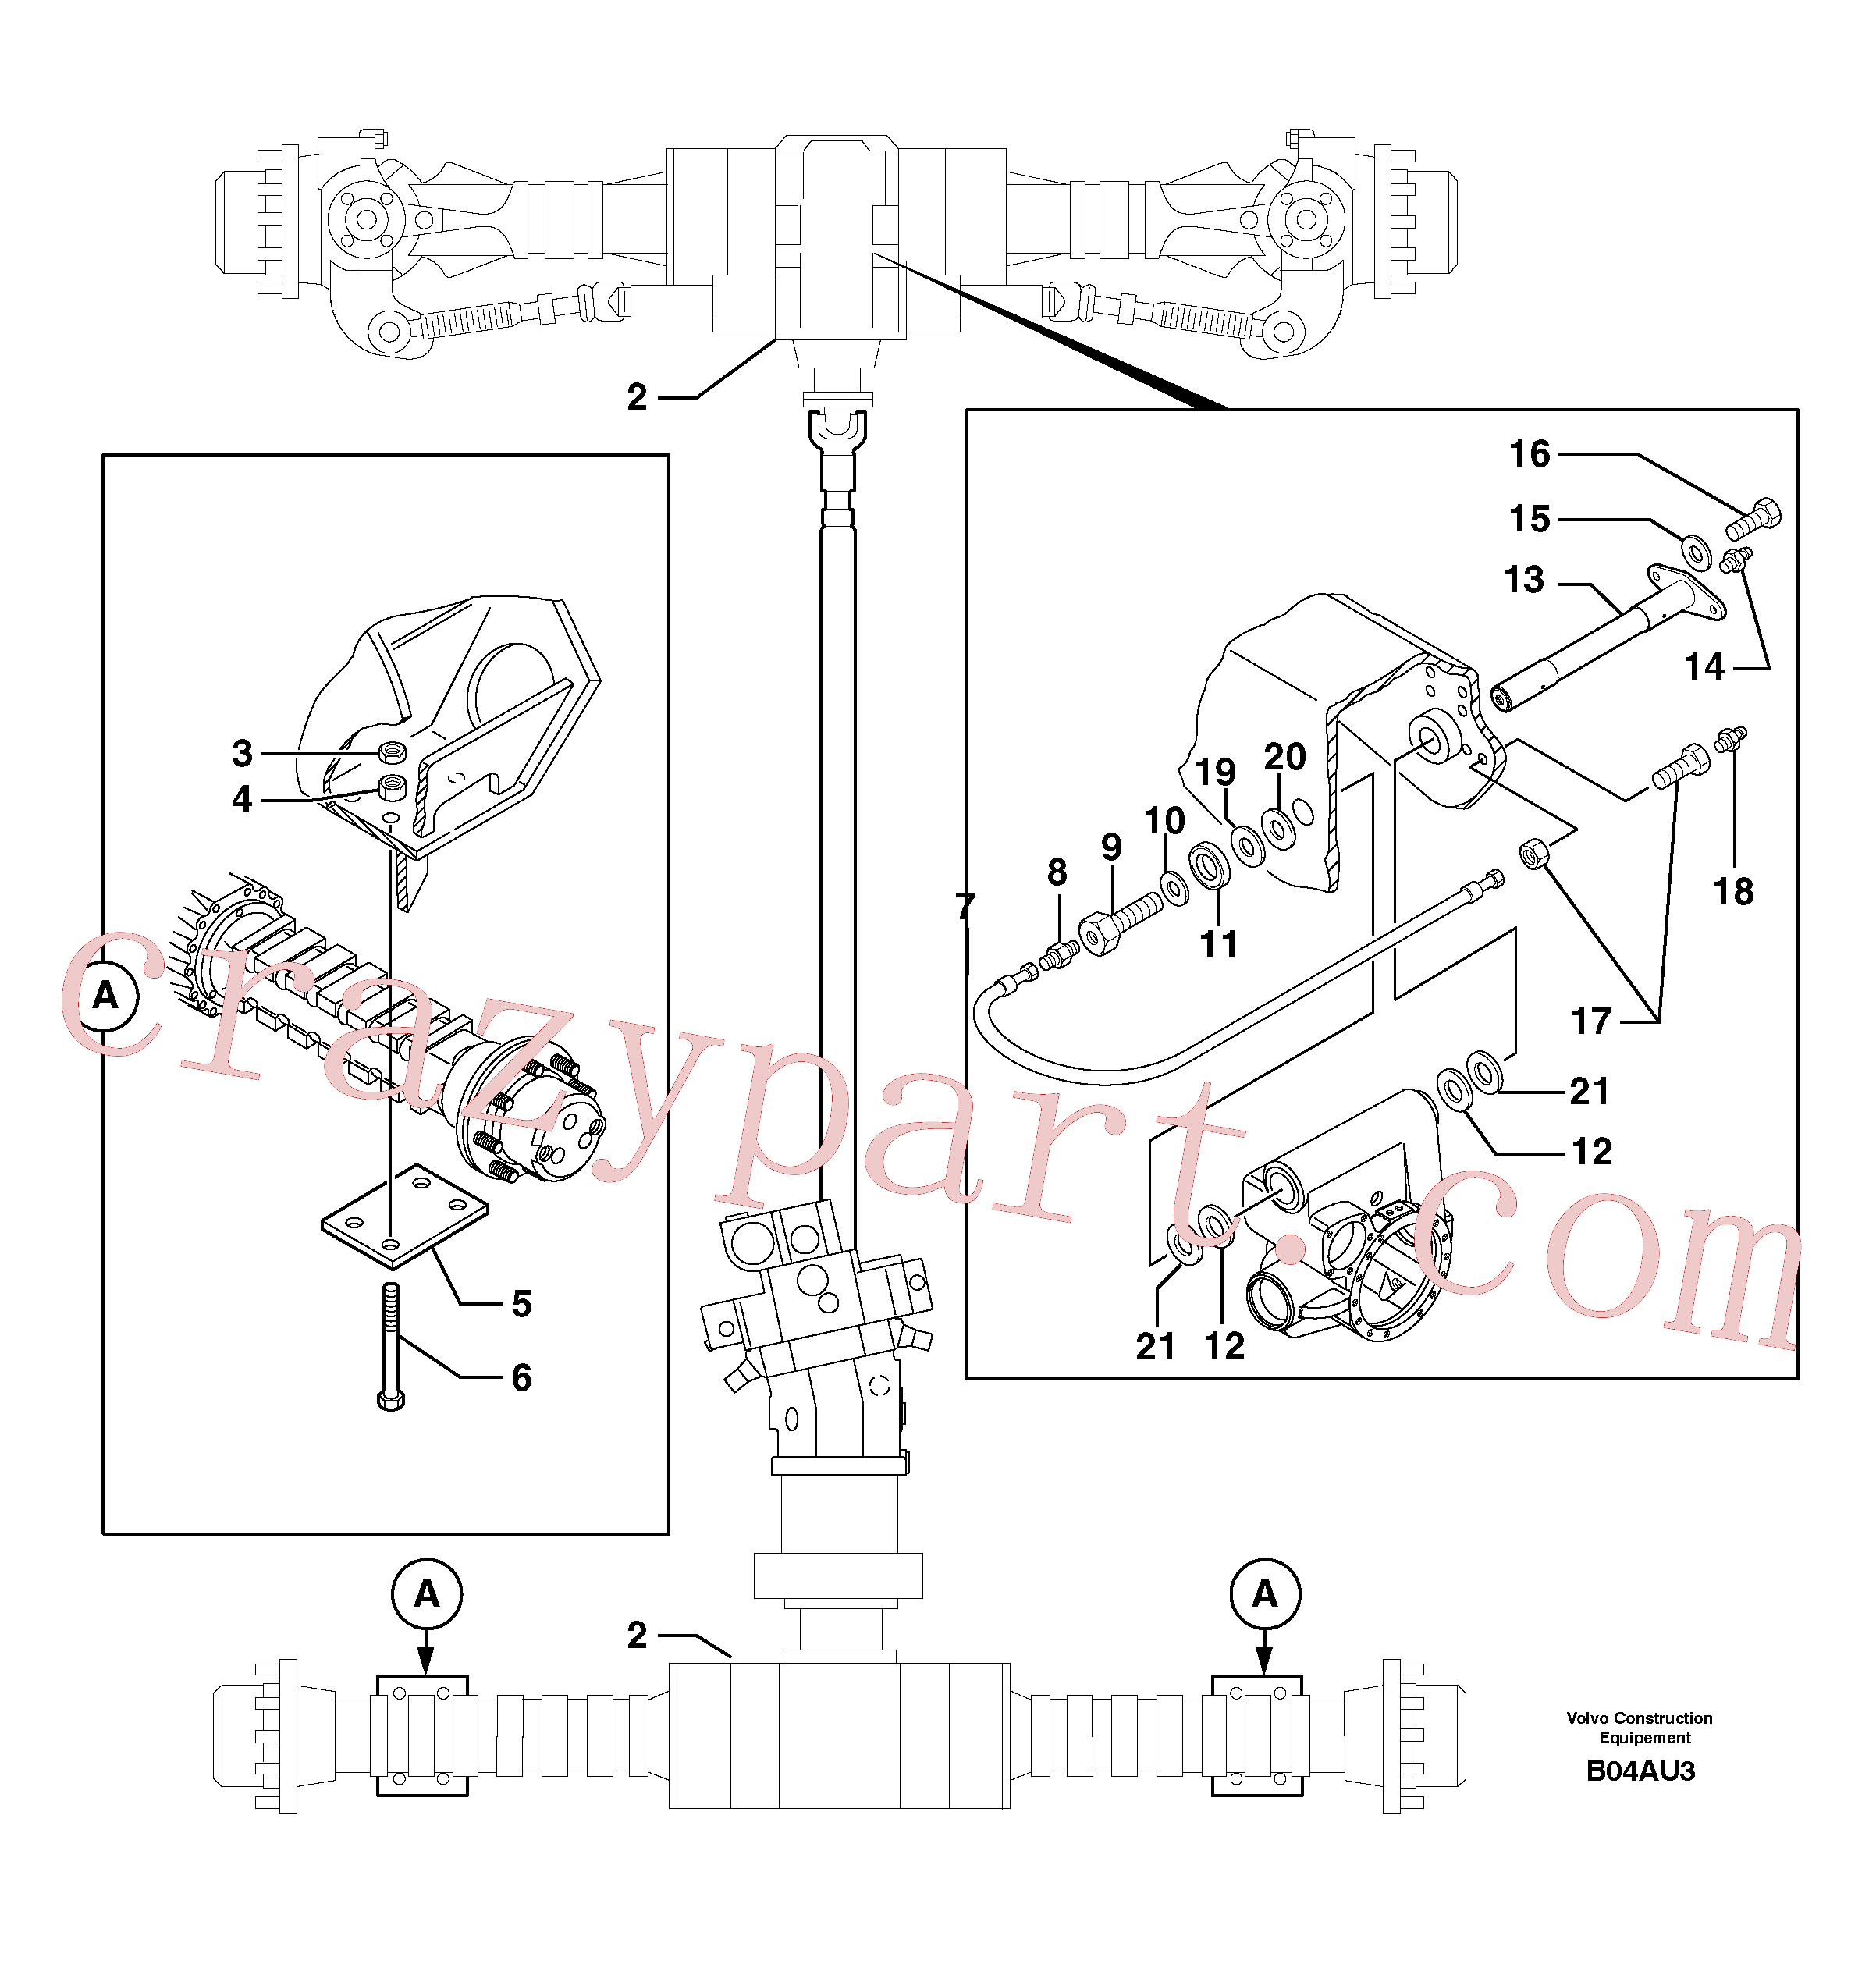 PJ4400027 for Volvo Axle cradles and mountings(B04AU3 assembly)